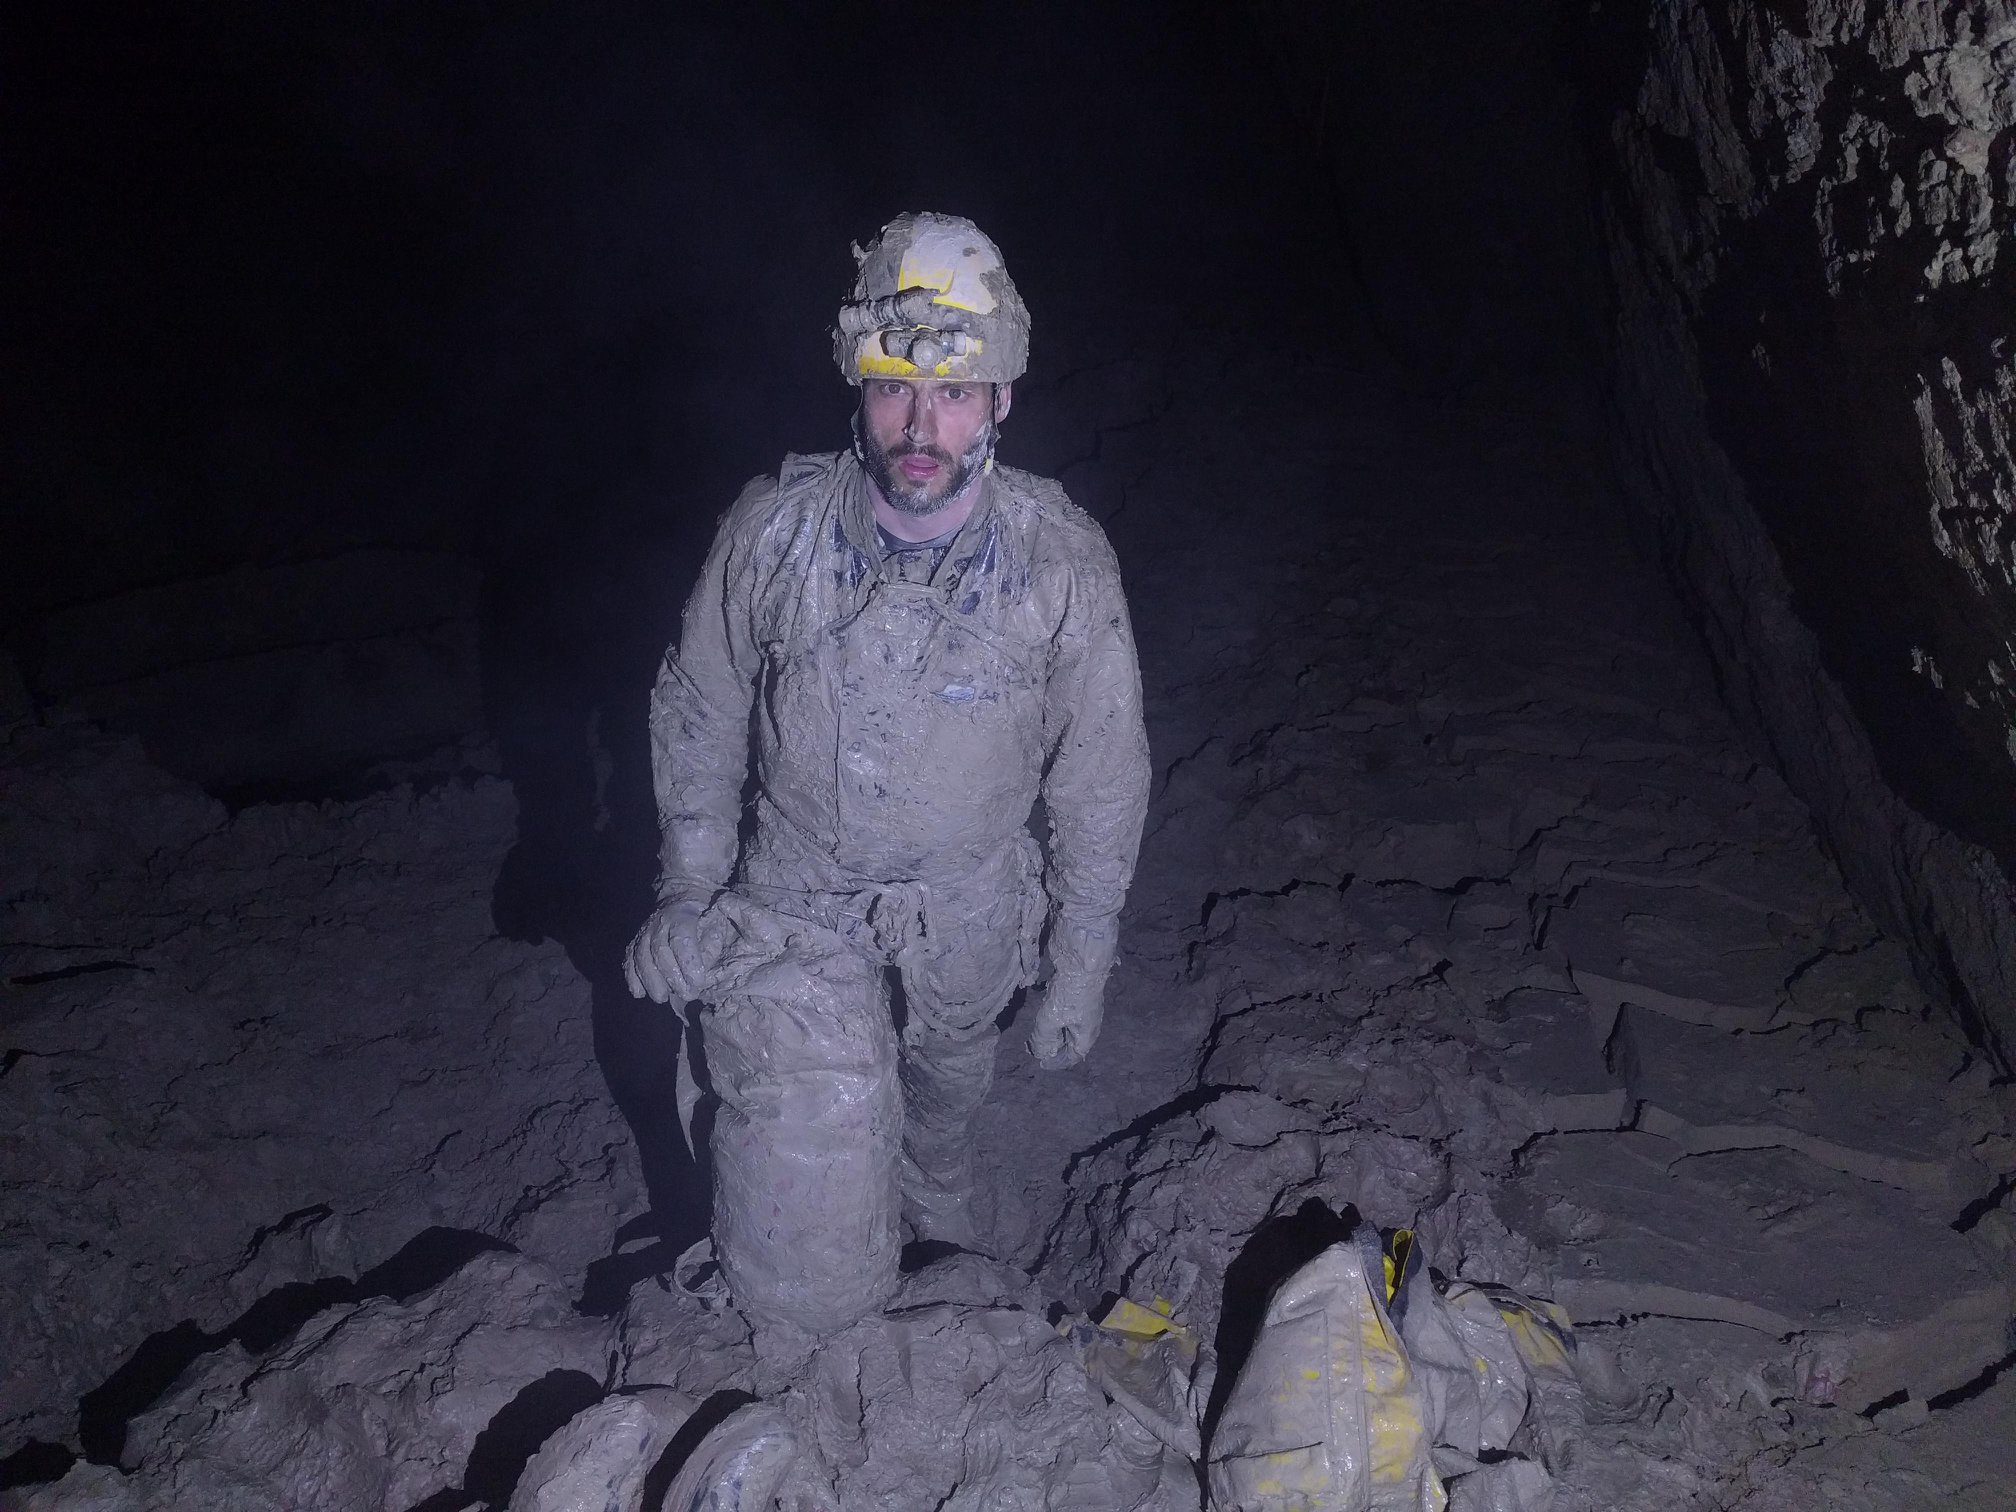 Return to Tears: The 2019 Expedition to America's Deepest Cave